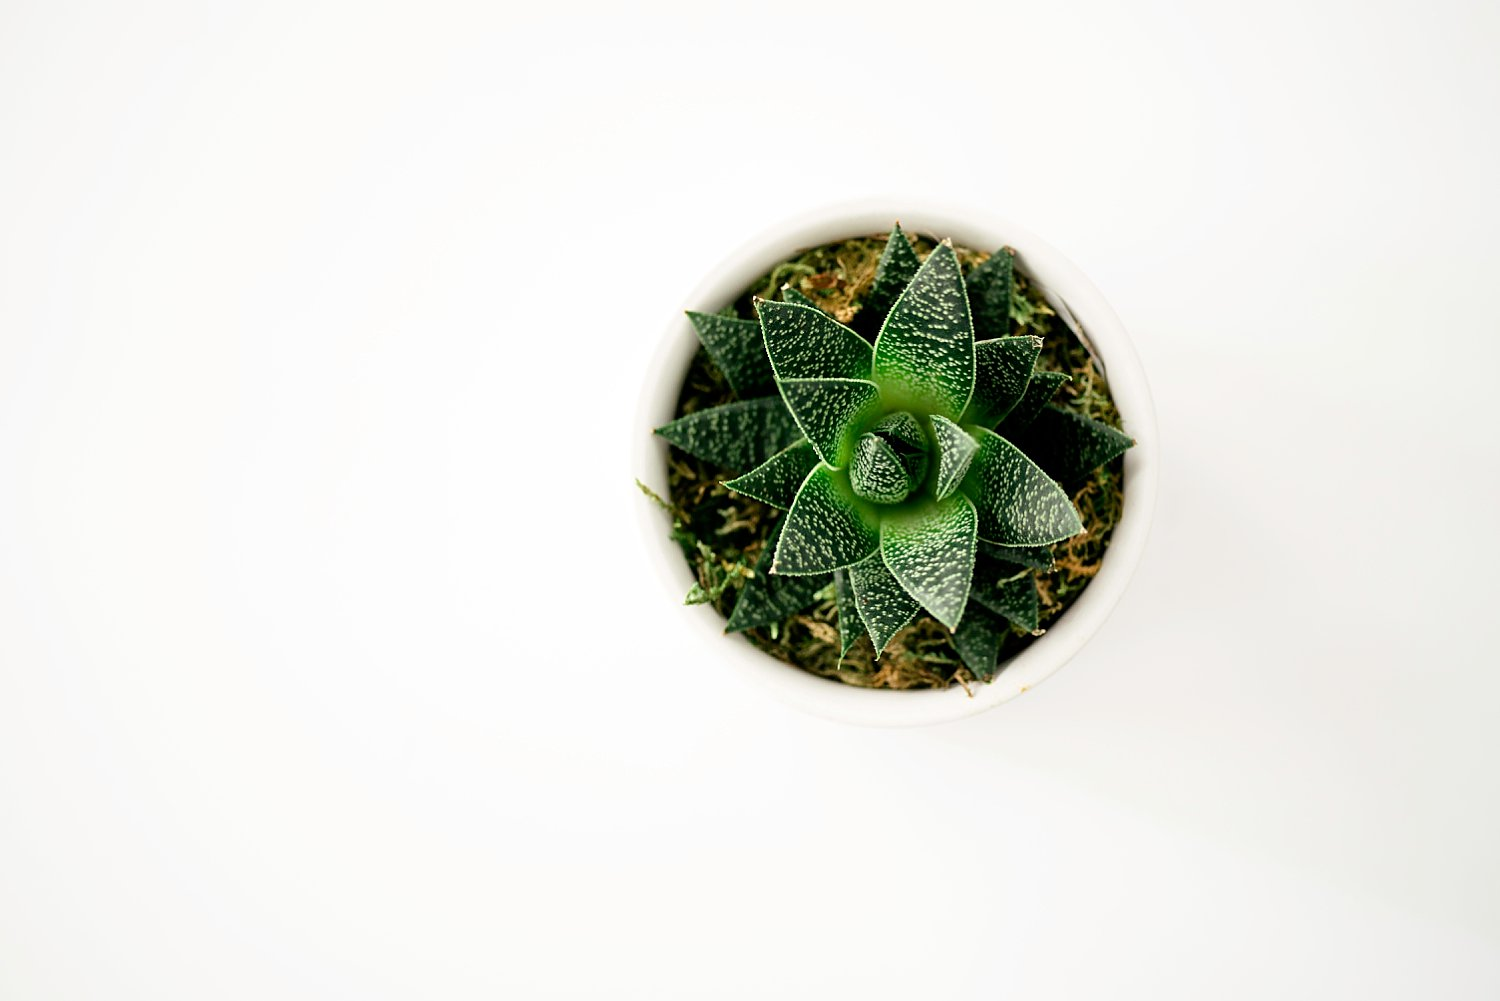 close up photo of a succulent on a white background